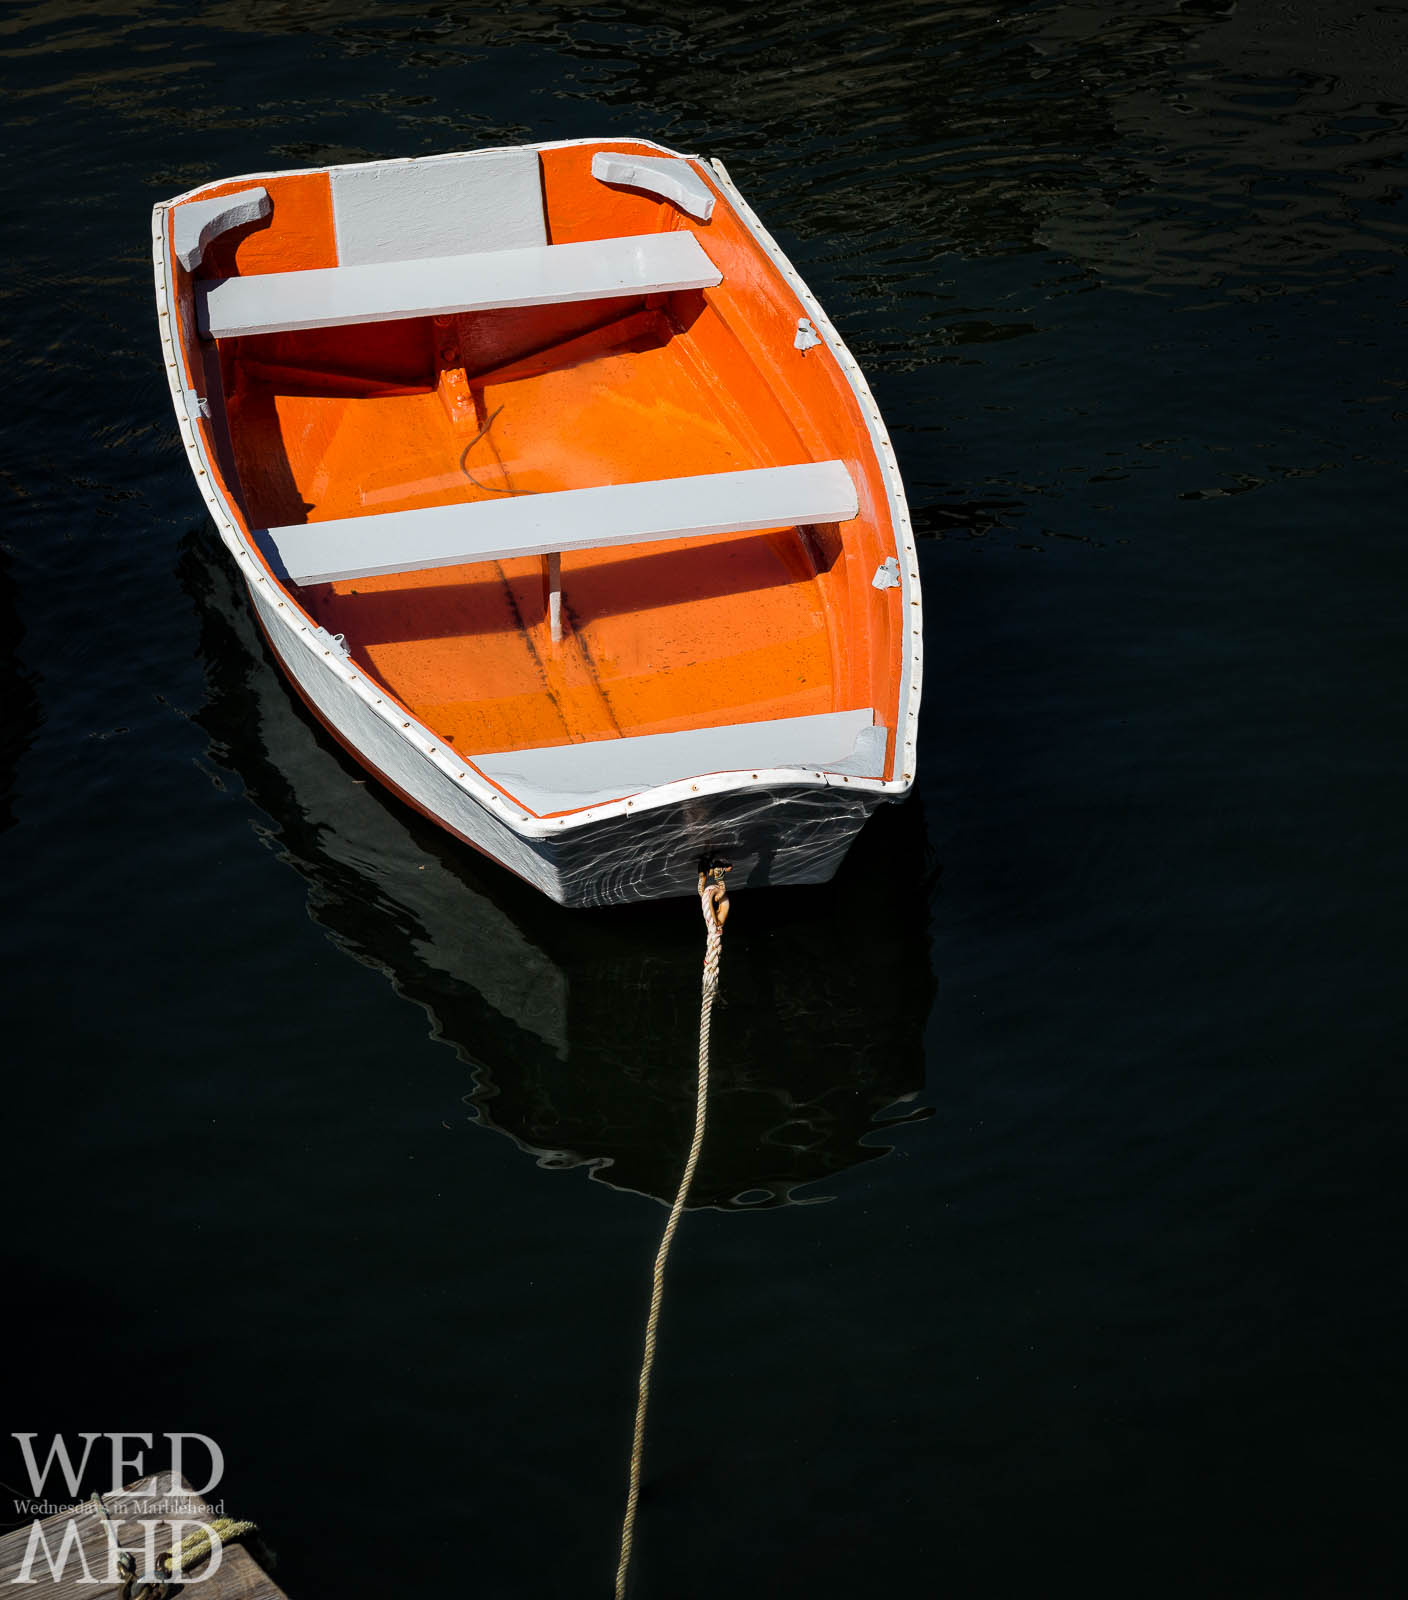 Orange Dinghy in Marblehead Harbor